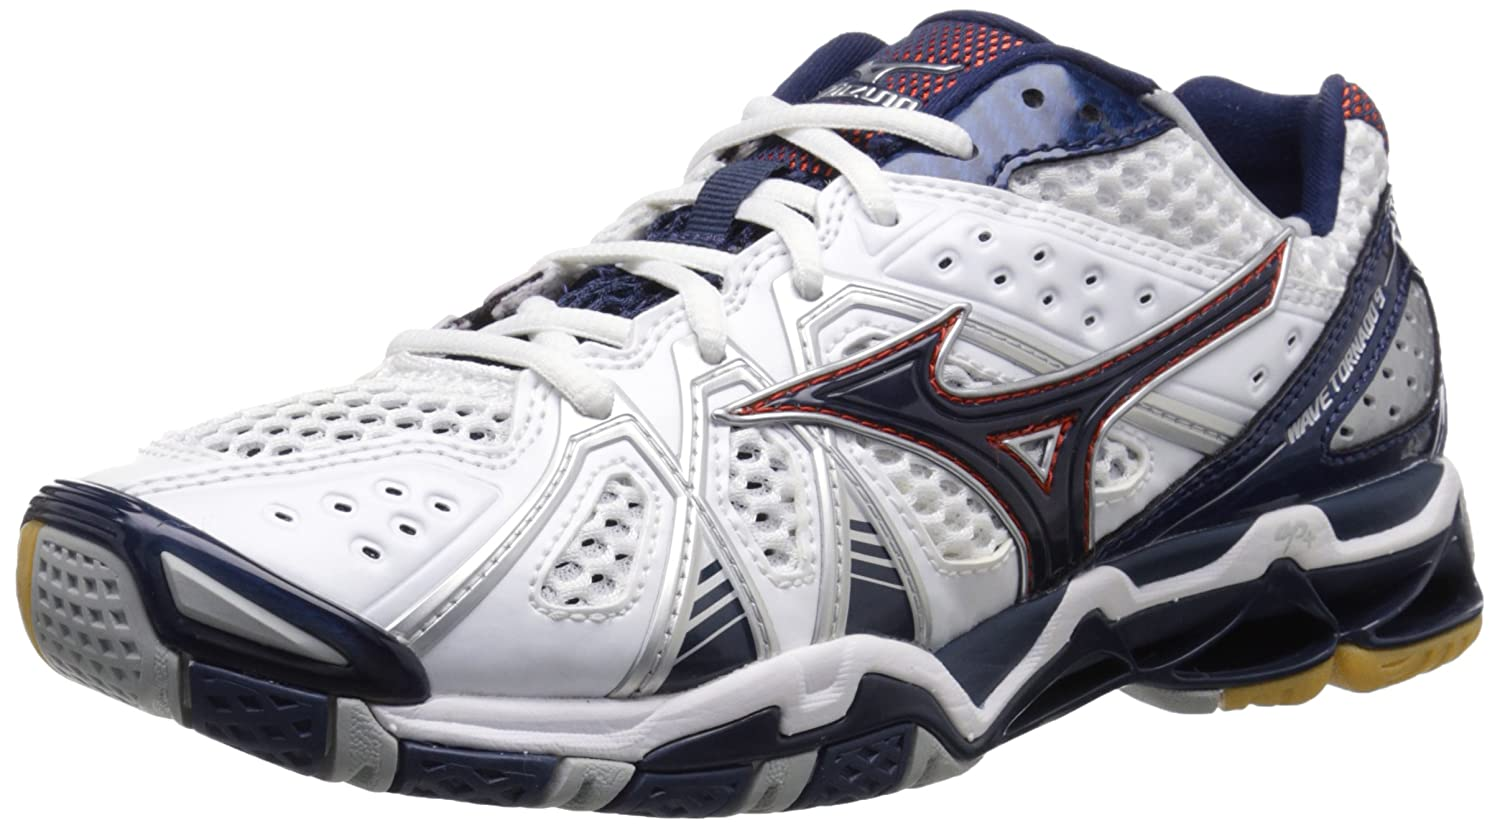 Mizuno Men's Wave Tornado 9 Wh-ny Volleyball Shoe Mizuno USA WAVE TORNADO 9 MENS WH-NY-M